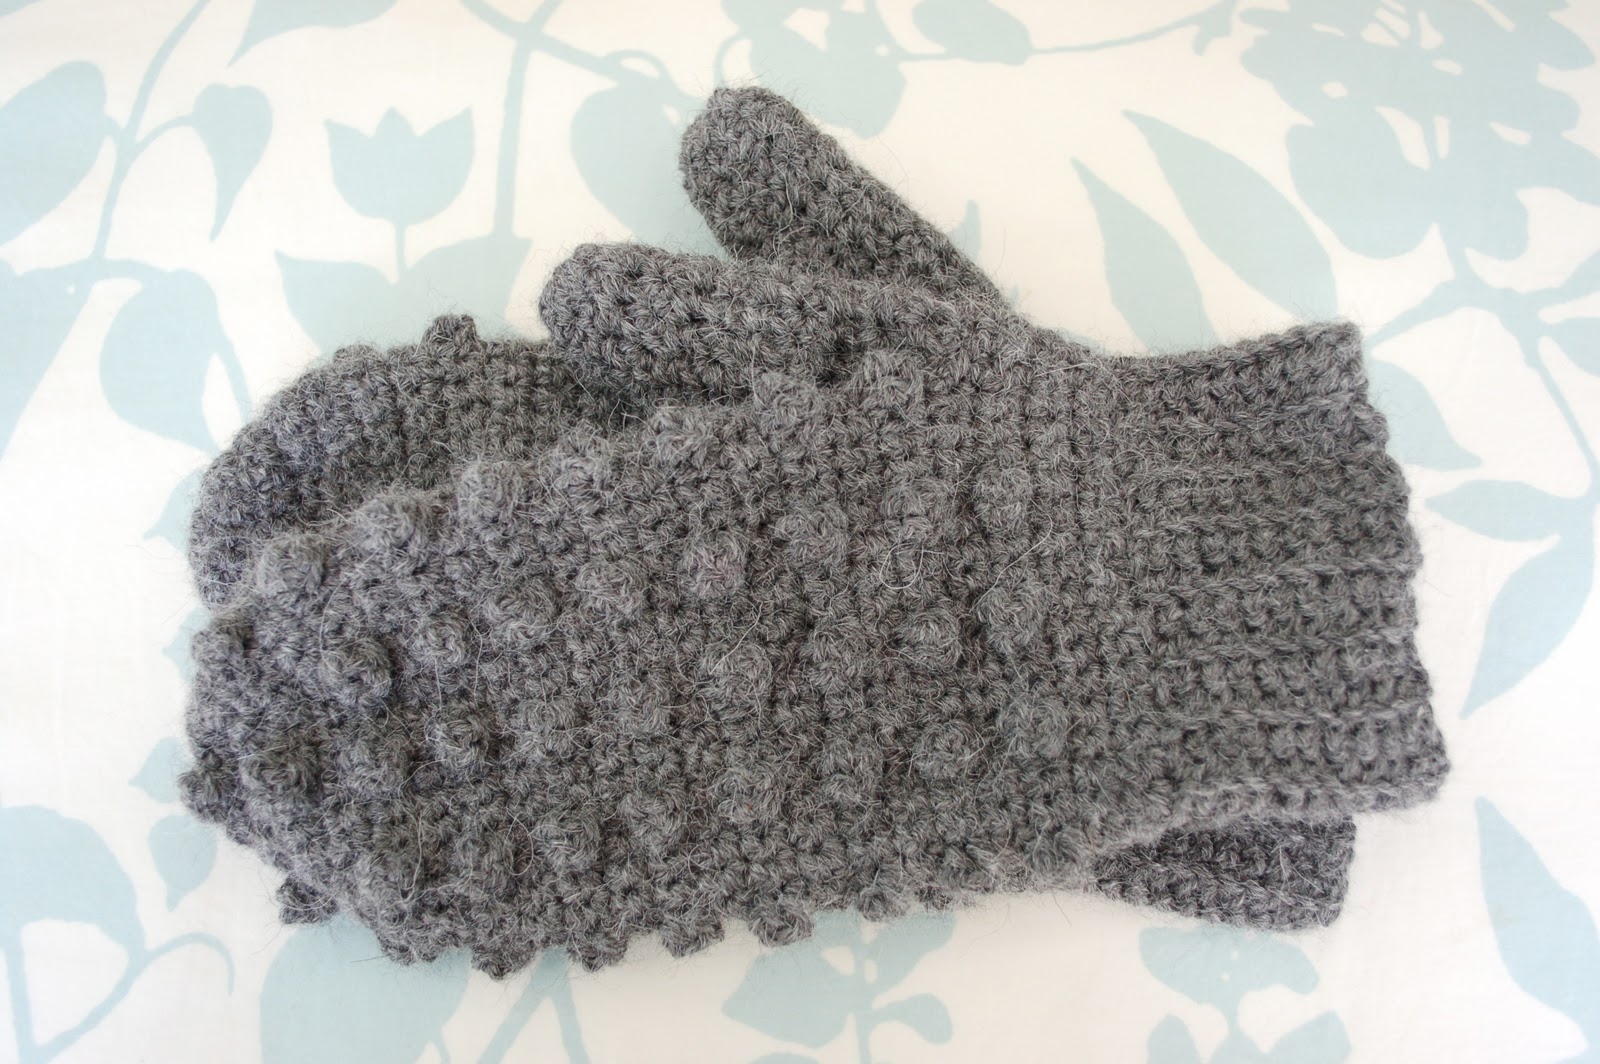 Crochet Mitten Pattern : most recently i made these mitten time mittens from crochet